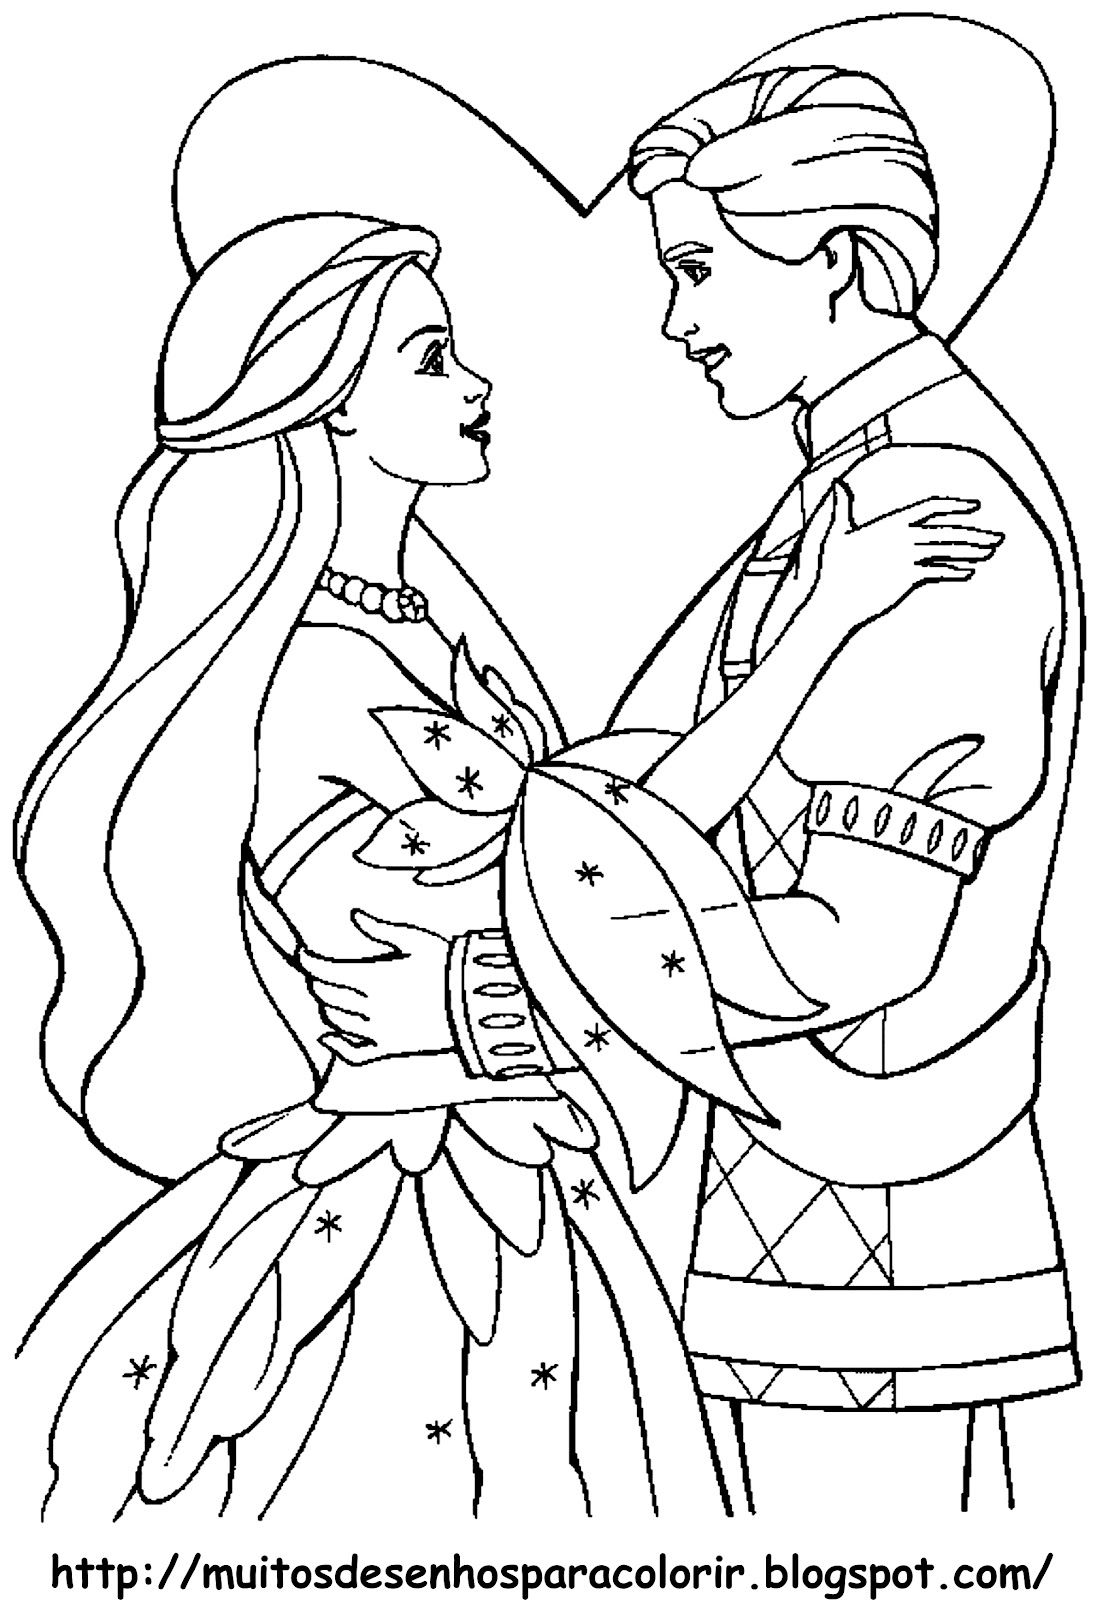 BARBIE COLORING PAGES: COLORING PAGE OF KEN FROM TOY STORY 3 | Toy ... | 1600x1103